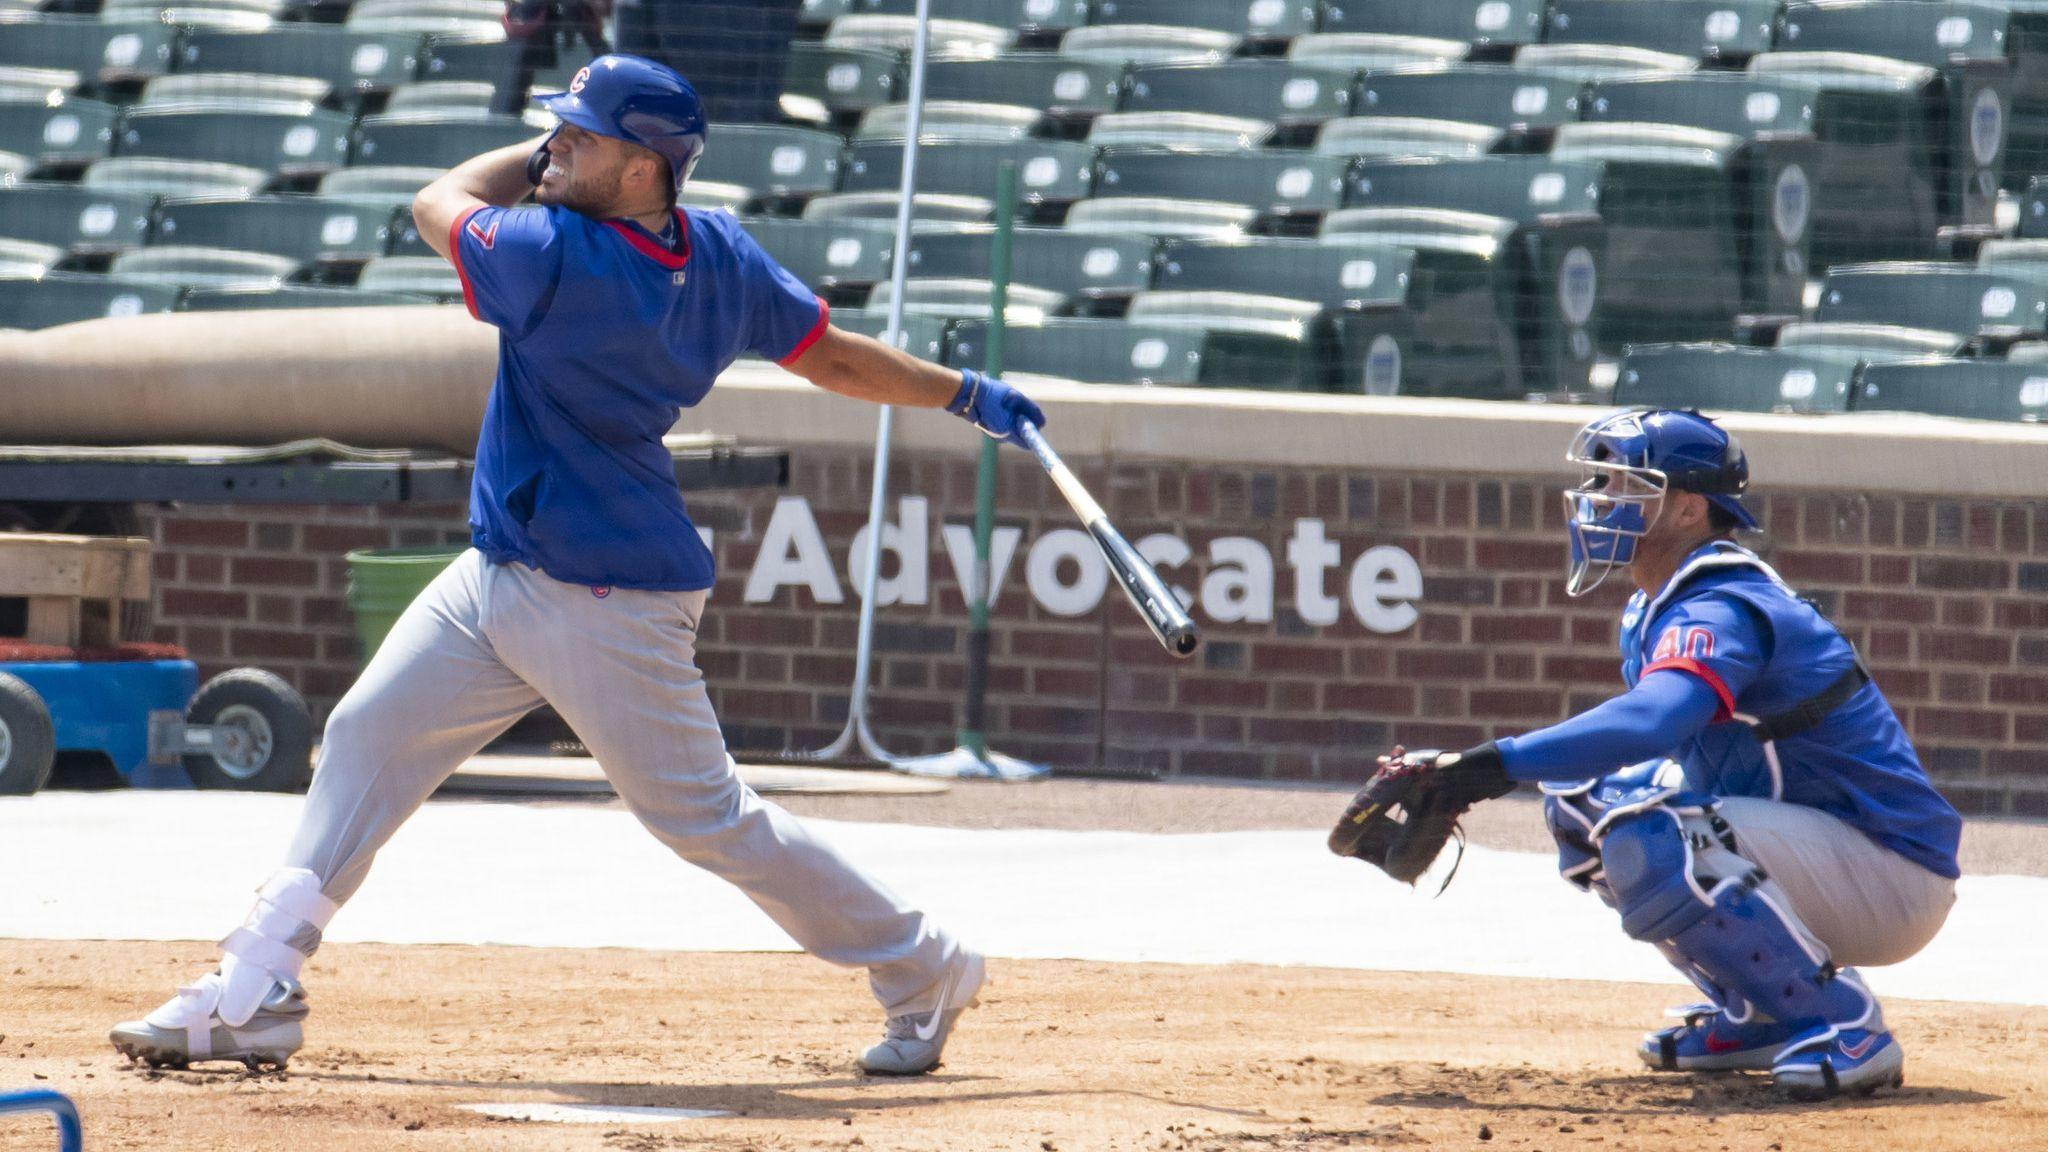 Victor Caratini starts at DH and Nico Hoerner at second base in the Cubs' opener against the Brewers